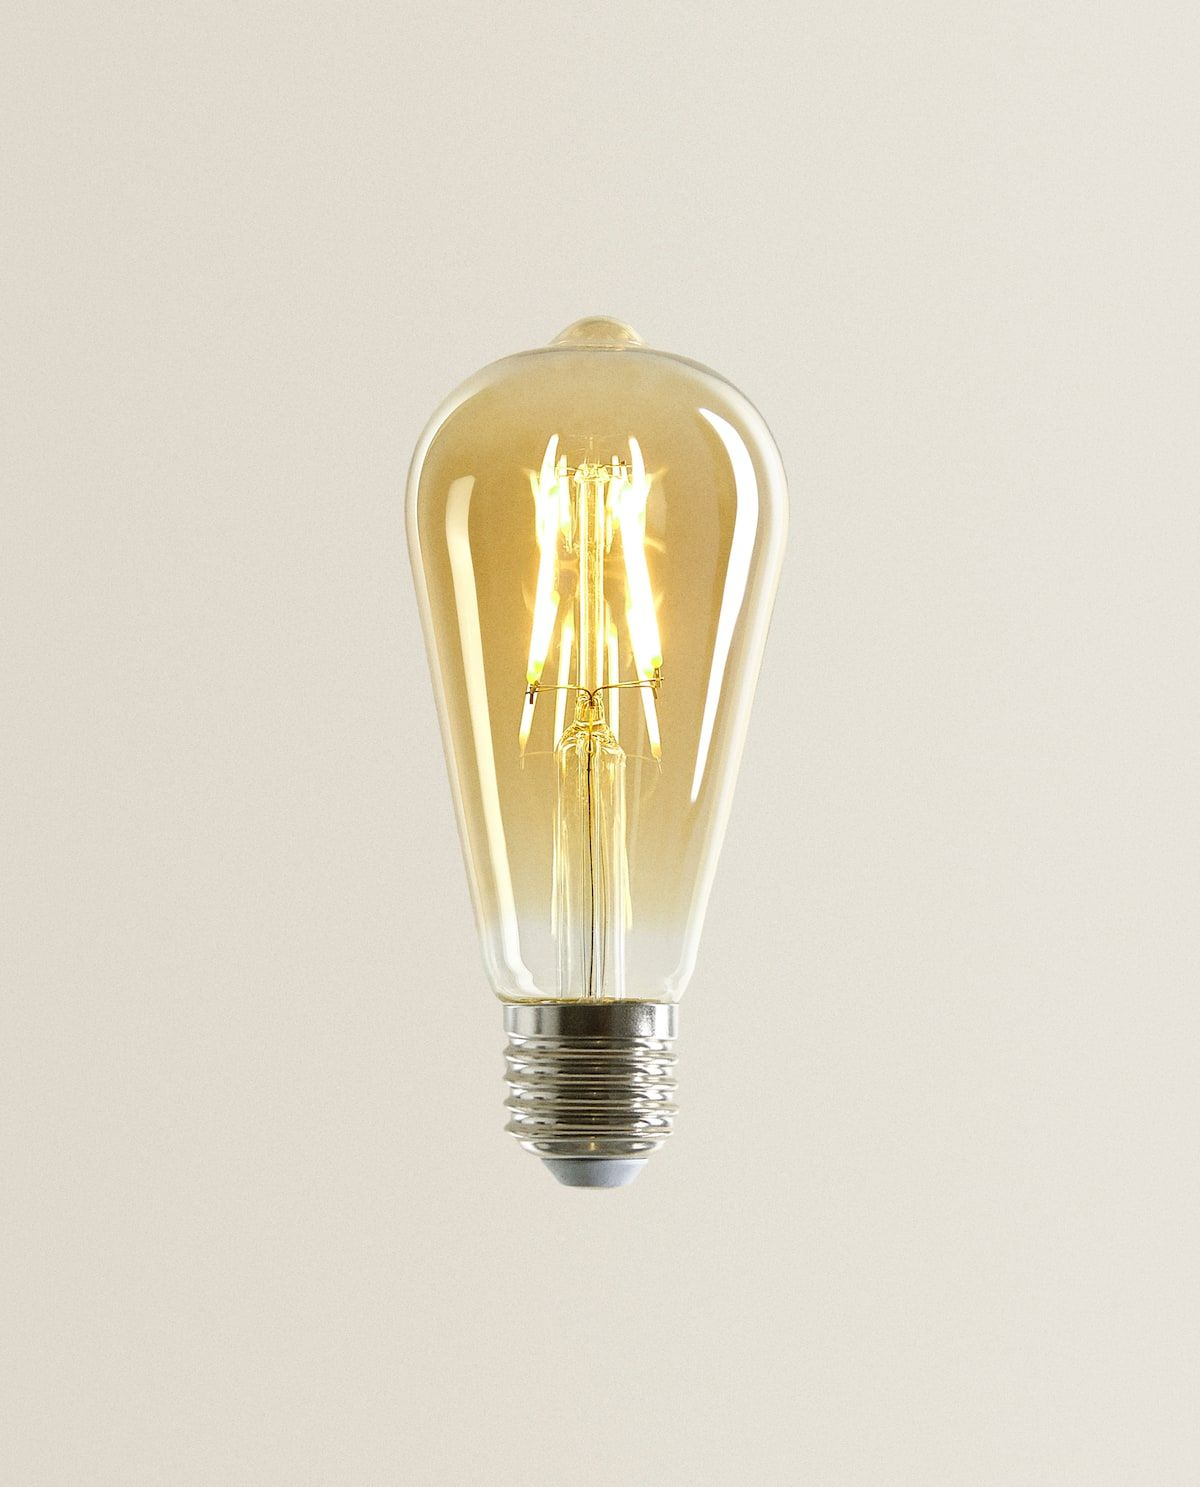 Image 1 Of The Product E27 Led Light Bulb In 2020 Led Light Bulb Light Bulb E27 Led